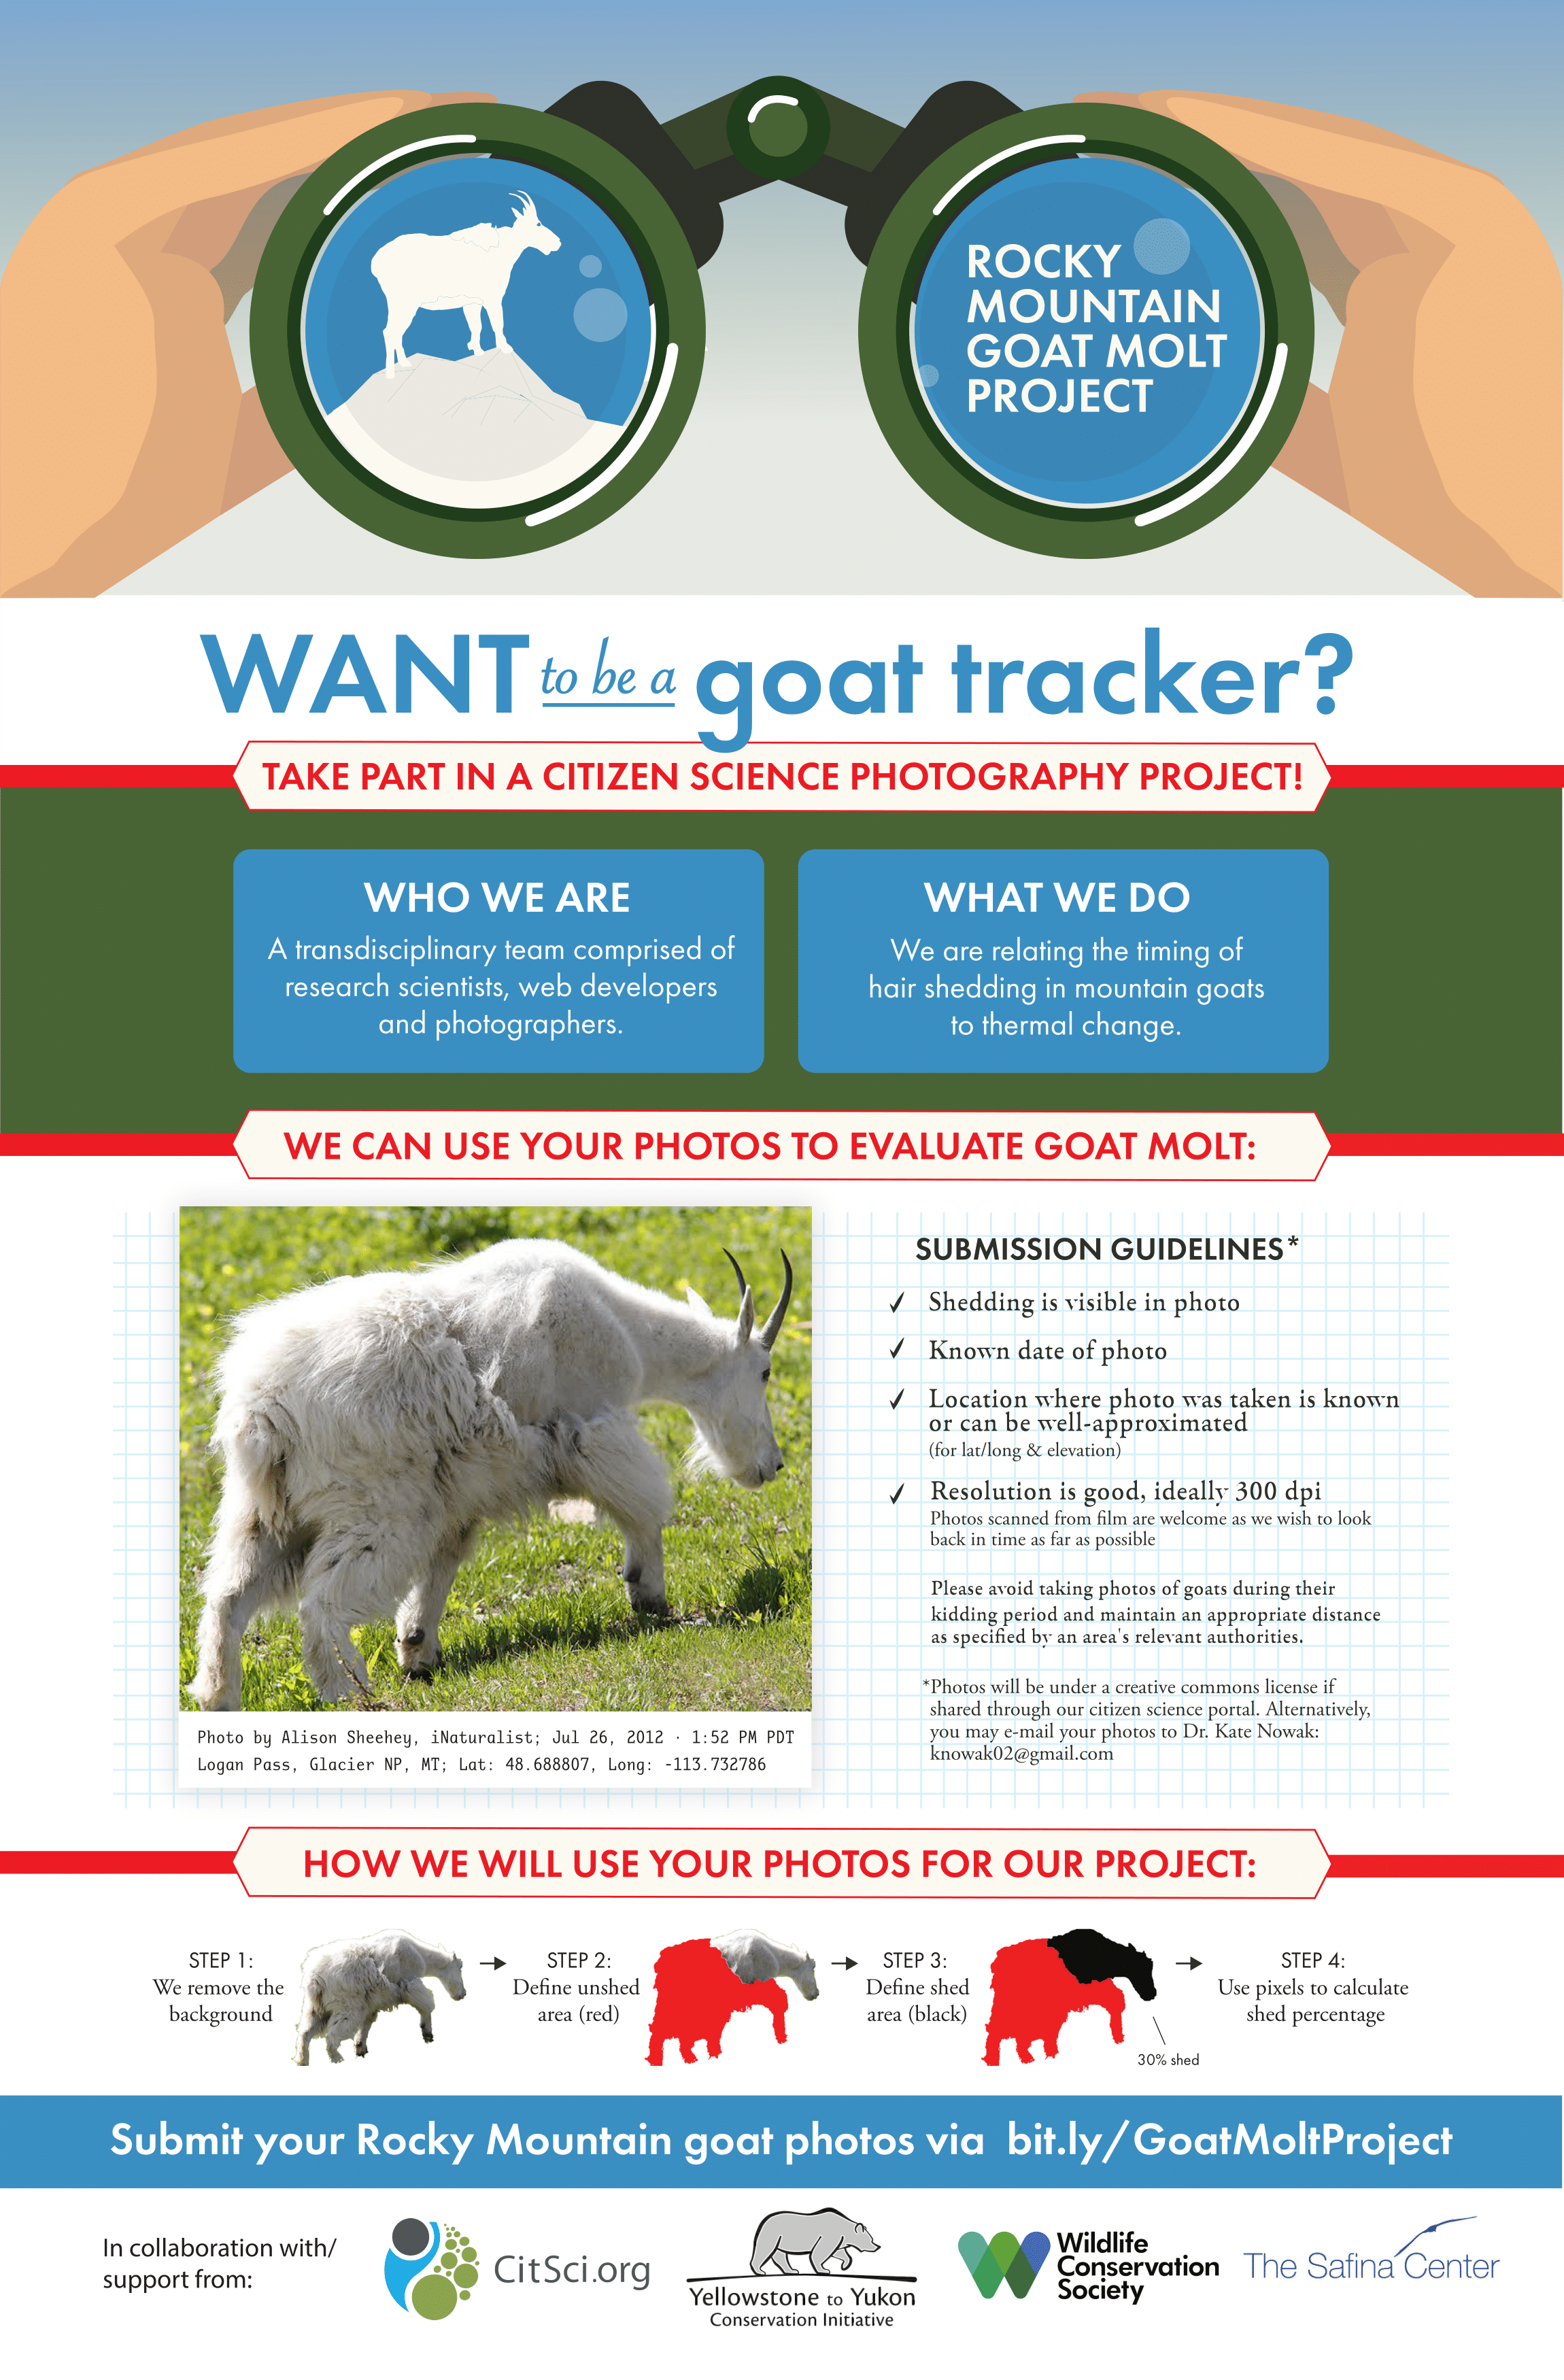 Citizen Science Project: The Mountain Goat Molt Project